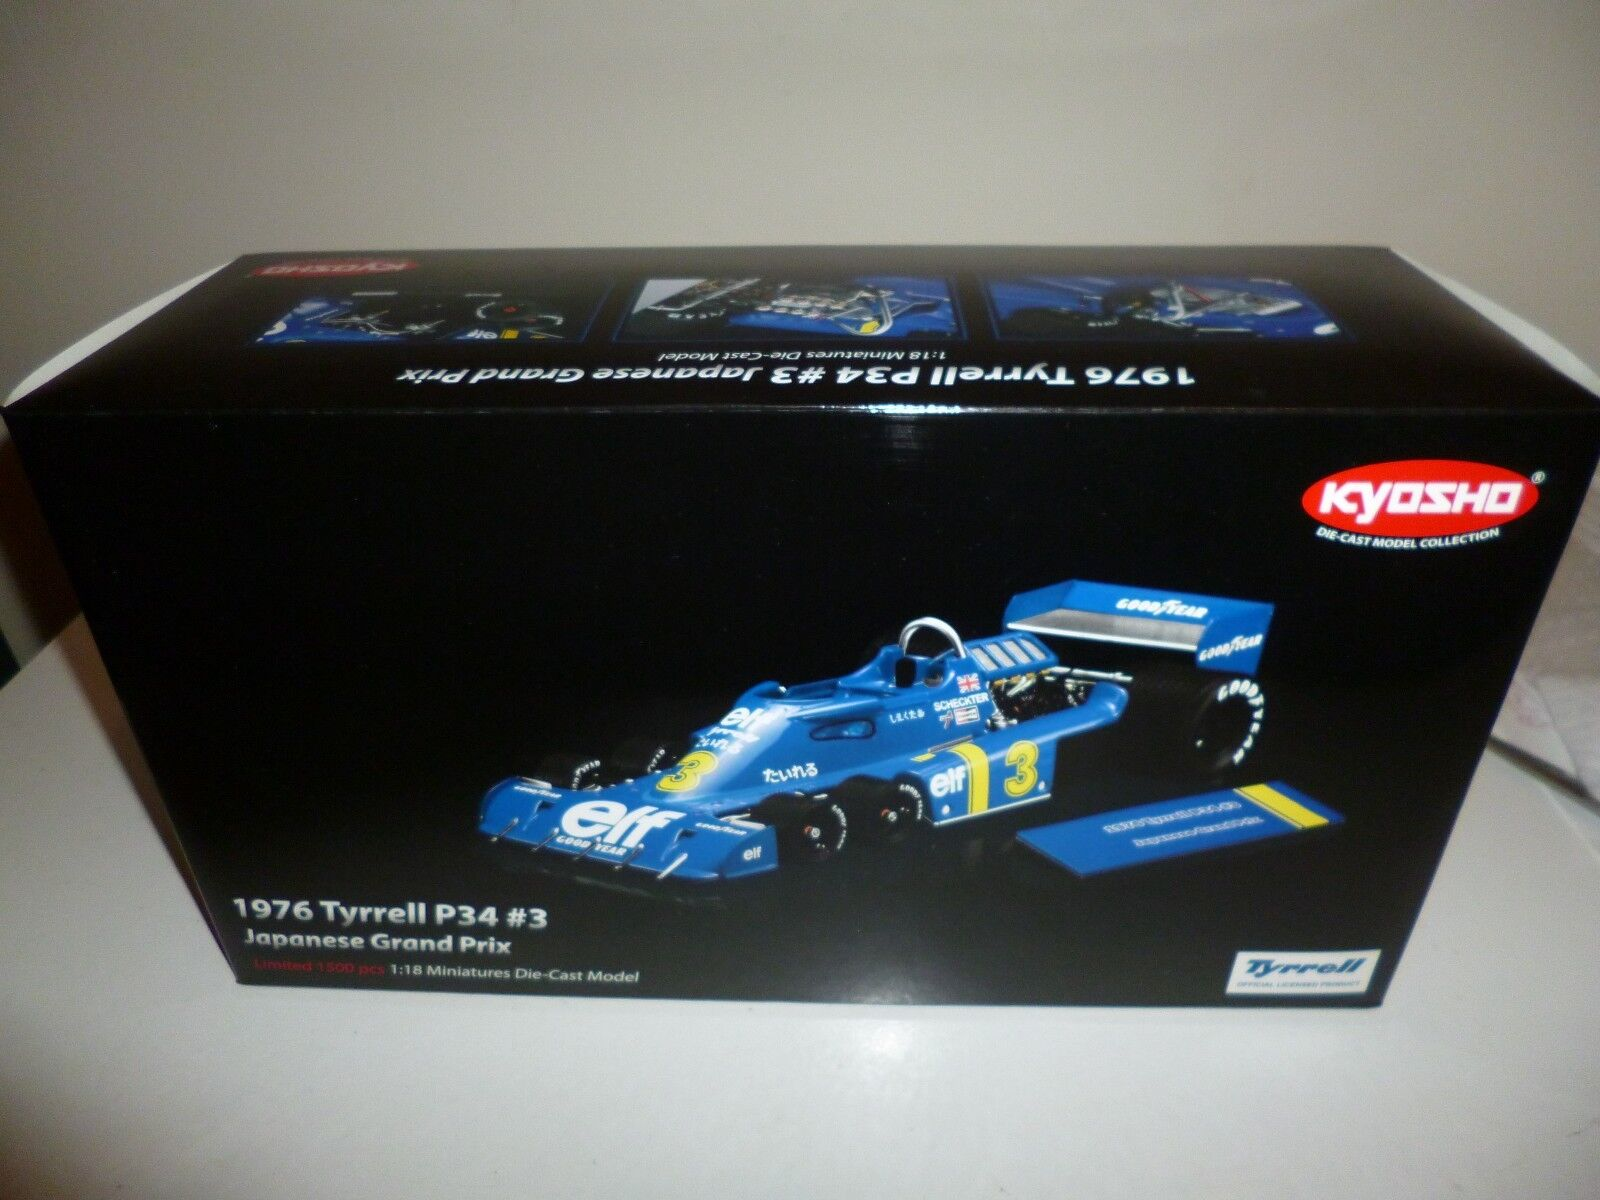 TYRRELL P34  3 del 1976 JAPAN Grand Prix Die-cast model KYOSHO RARISSIMA NEW Rar